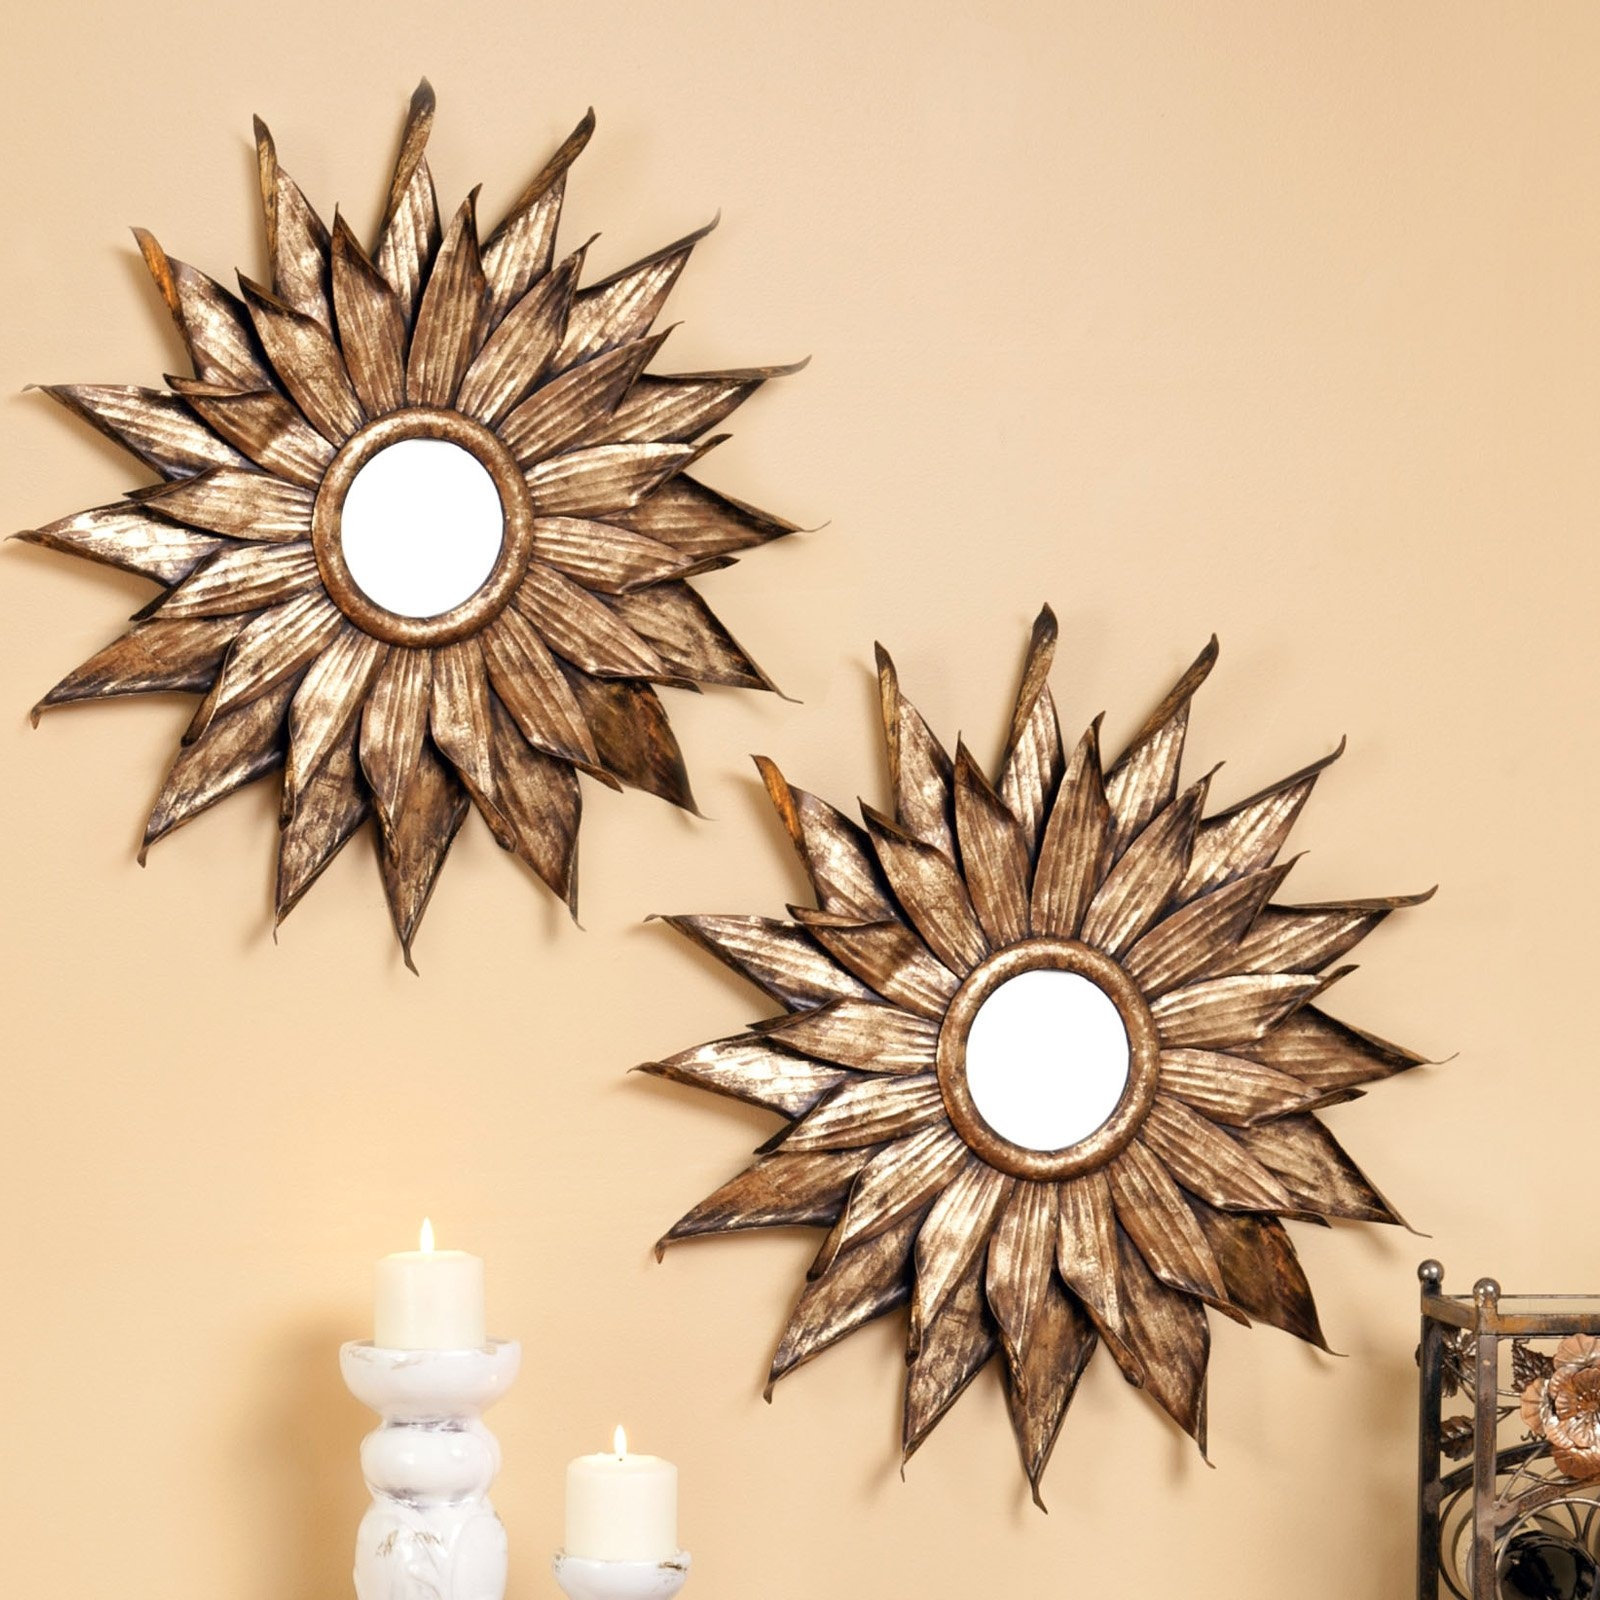 Have To Have It Evergreen Enterprises Metal Sunflower Wall Mirror Inside Sun Mirrors For Sale (Image 5 of 15)